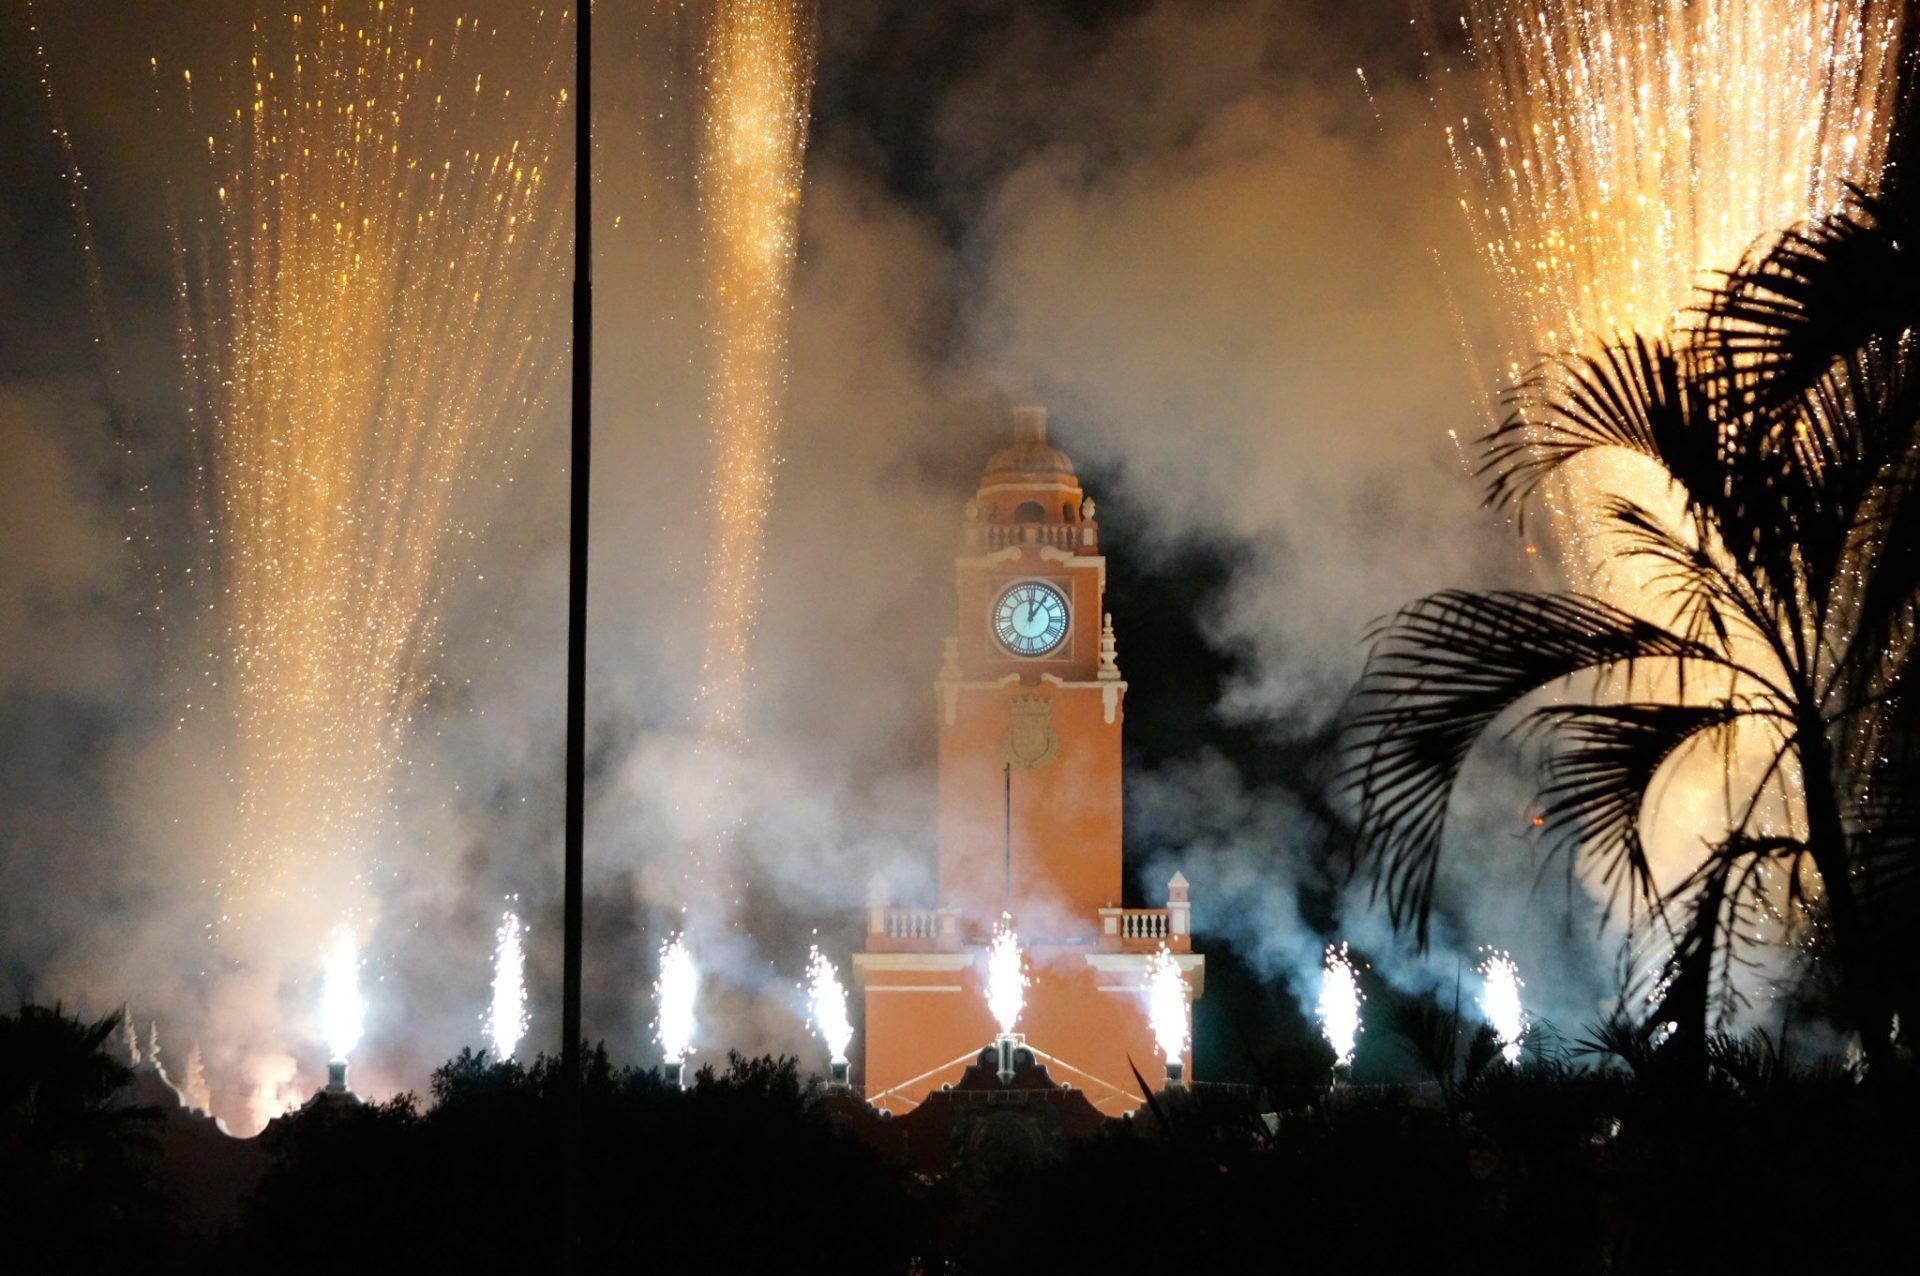 The 15 best things to do in merida mexico travel guide tips 2018 fireworks go off over the municipal palace and clock tower in merida on the opening night gumiabroncs Image collections